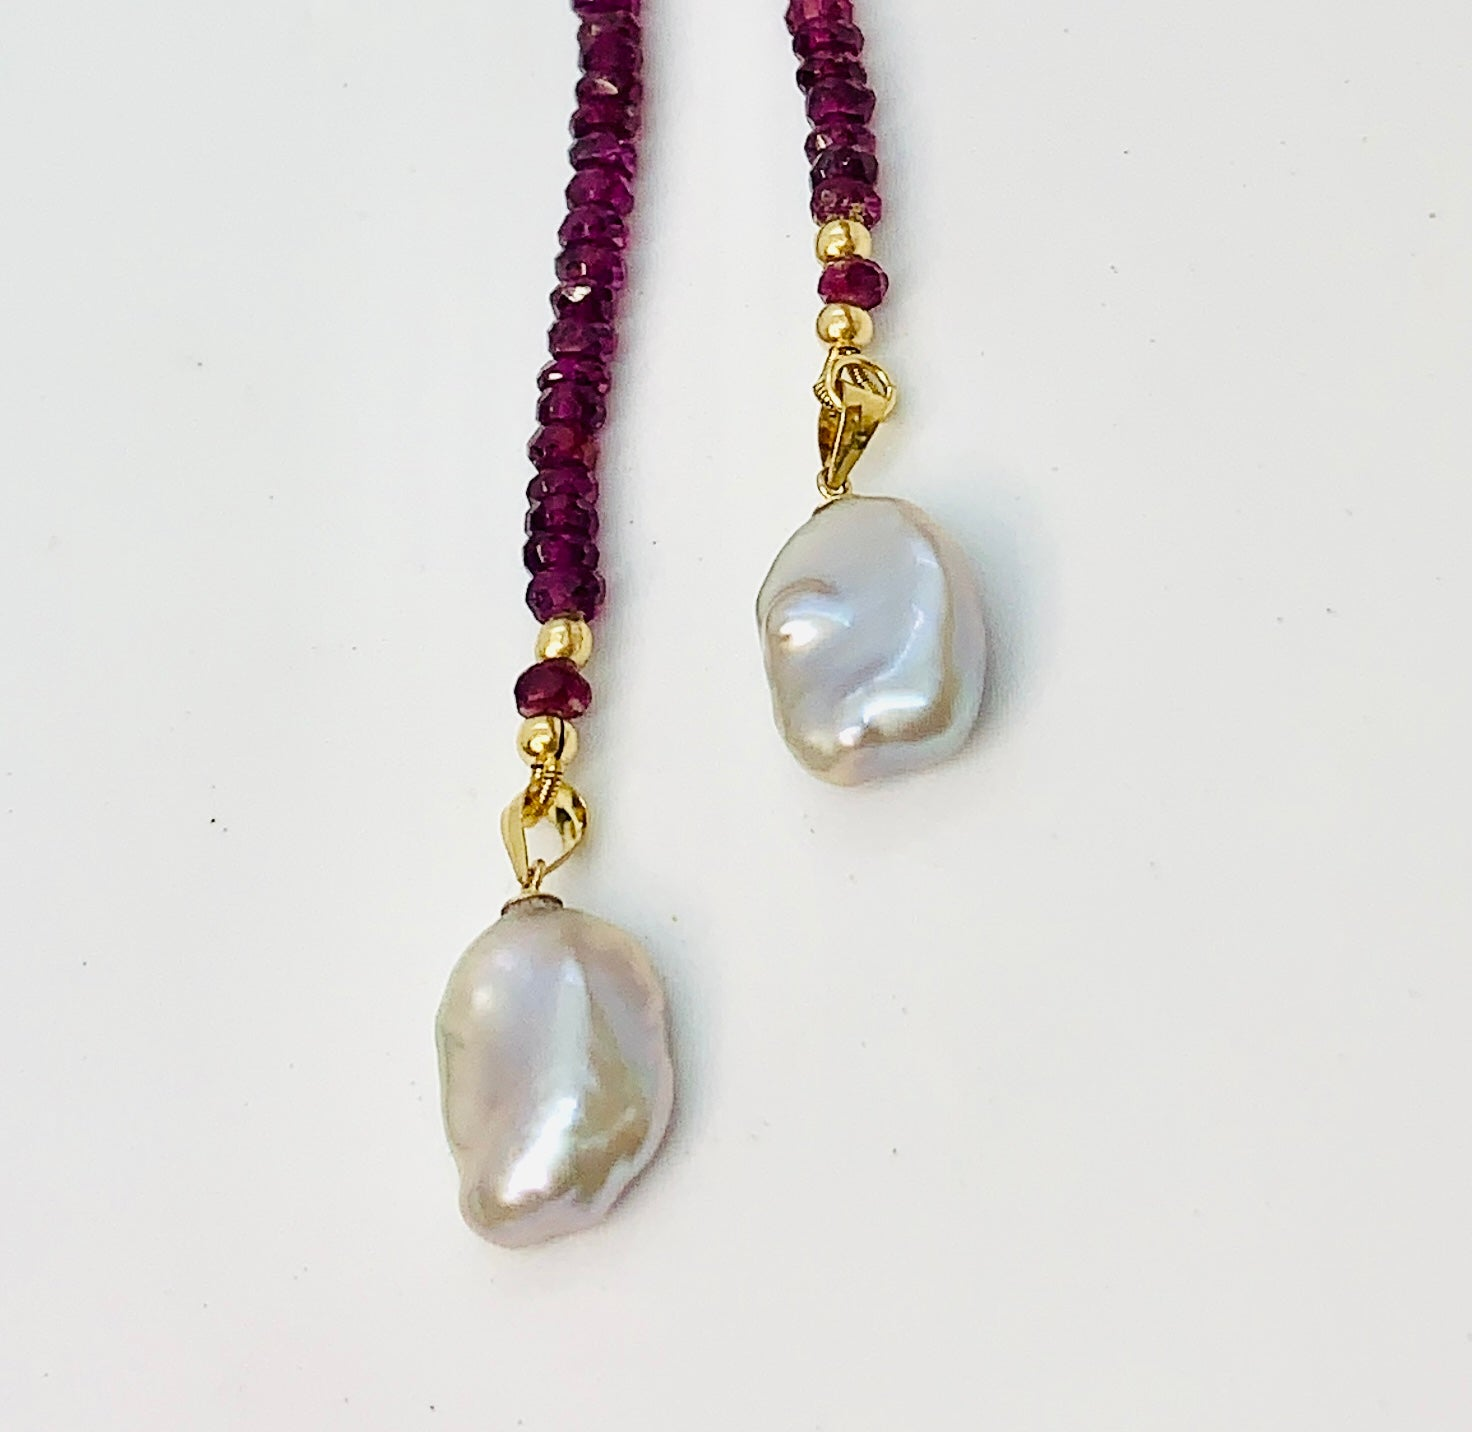 Rhodolite Garnet Gem Ombre Lariat Necklace with Keshi Pearls